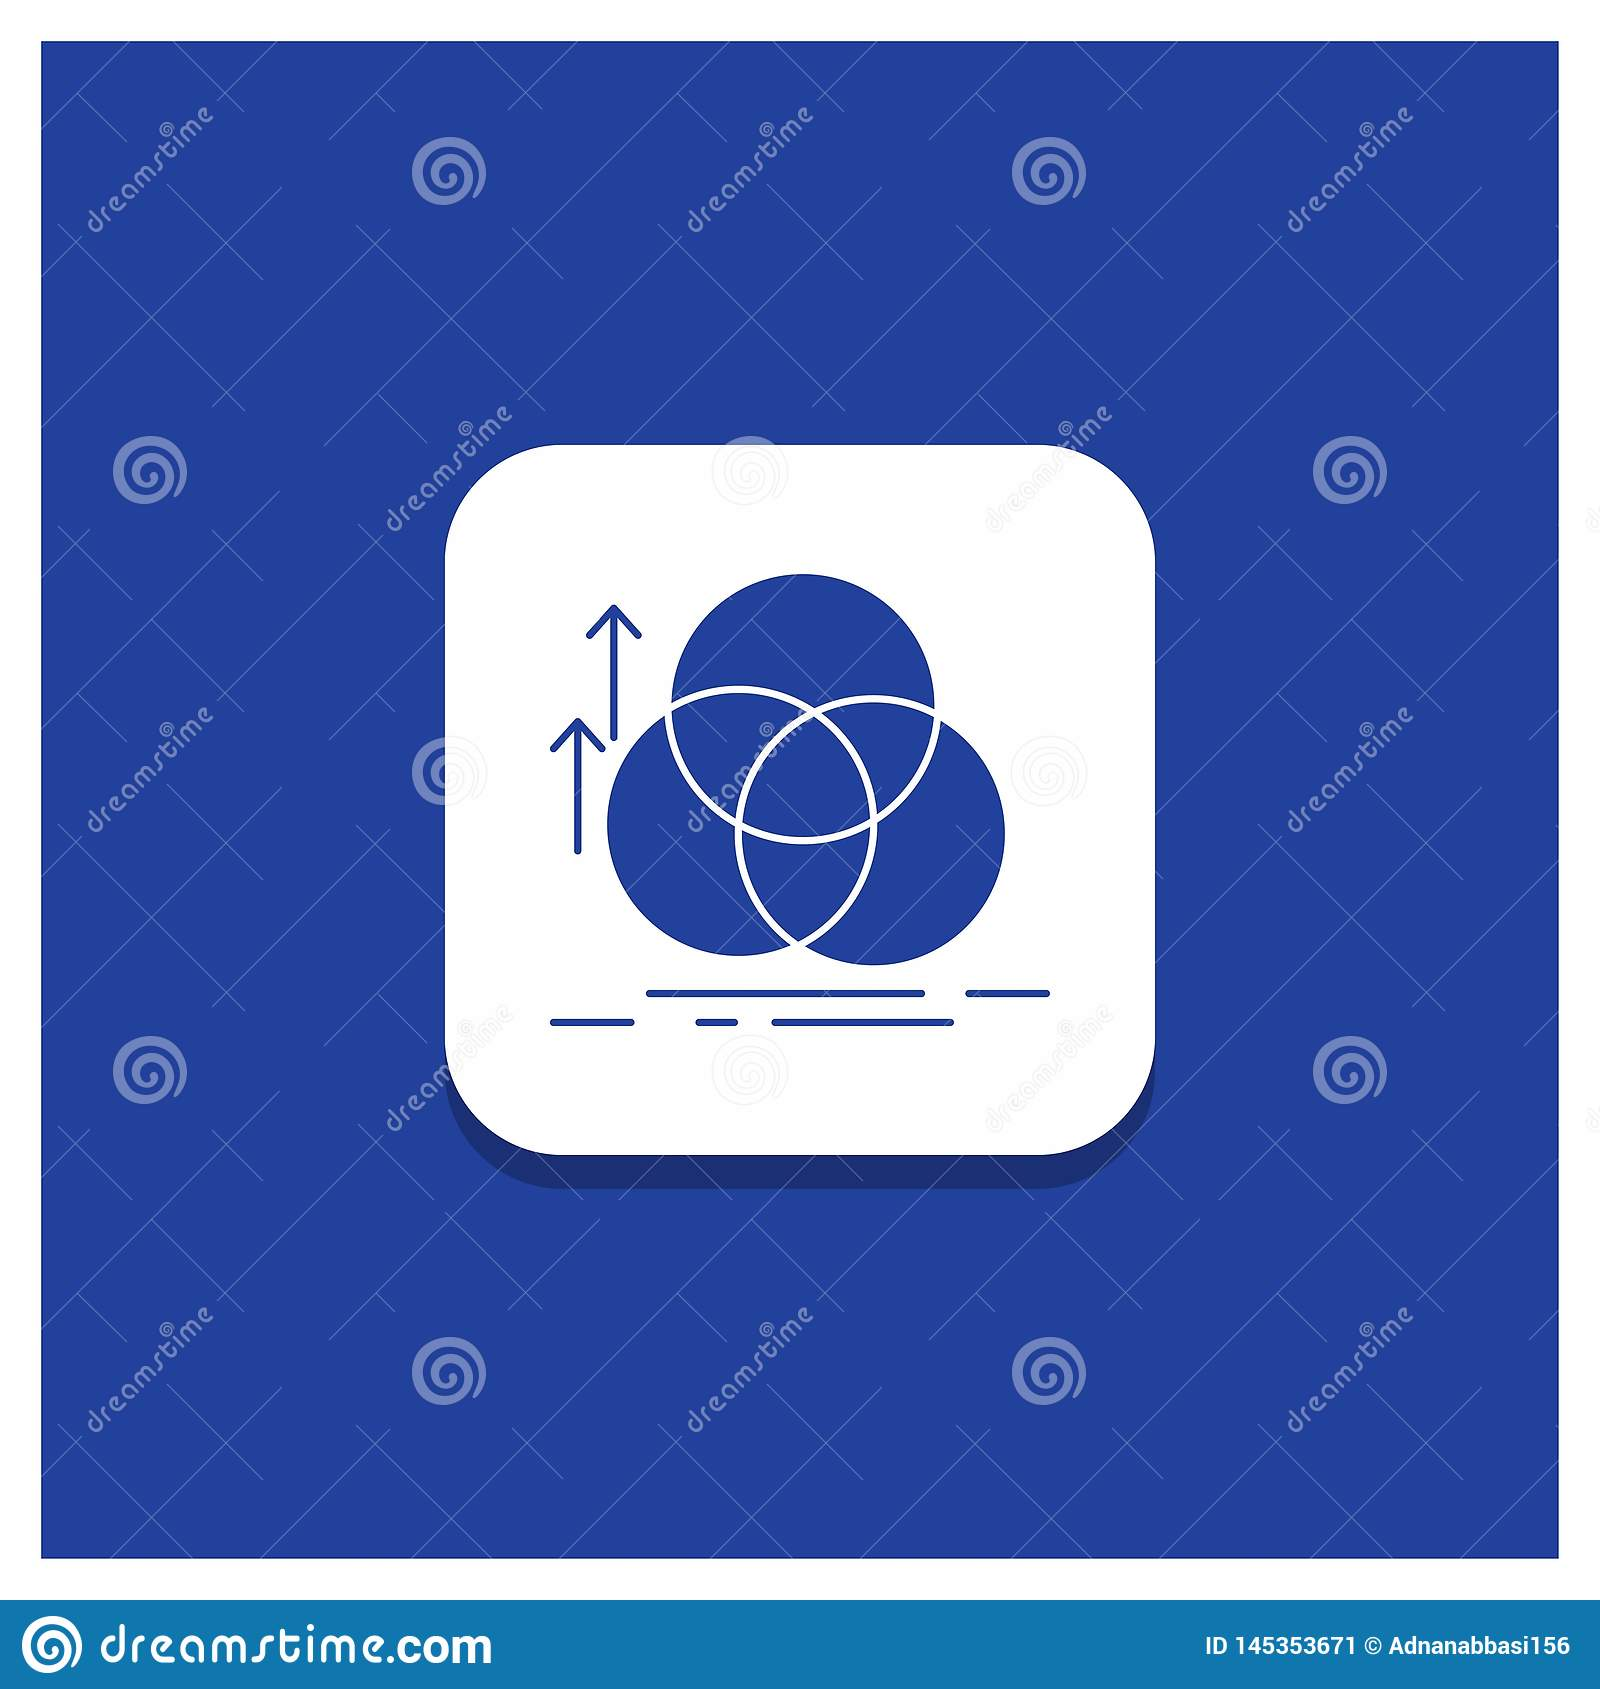 Blue Round Button for balance, circle, alignment, measurement, geometry Glyph icon